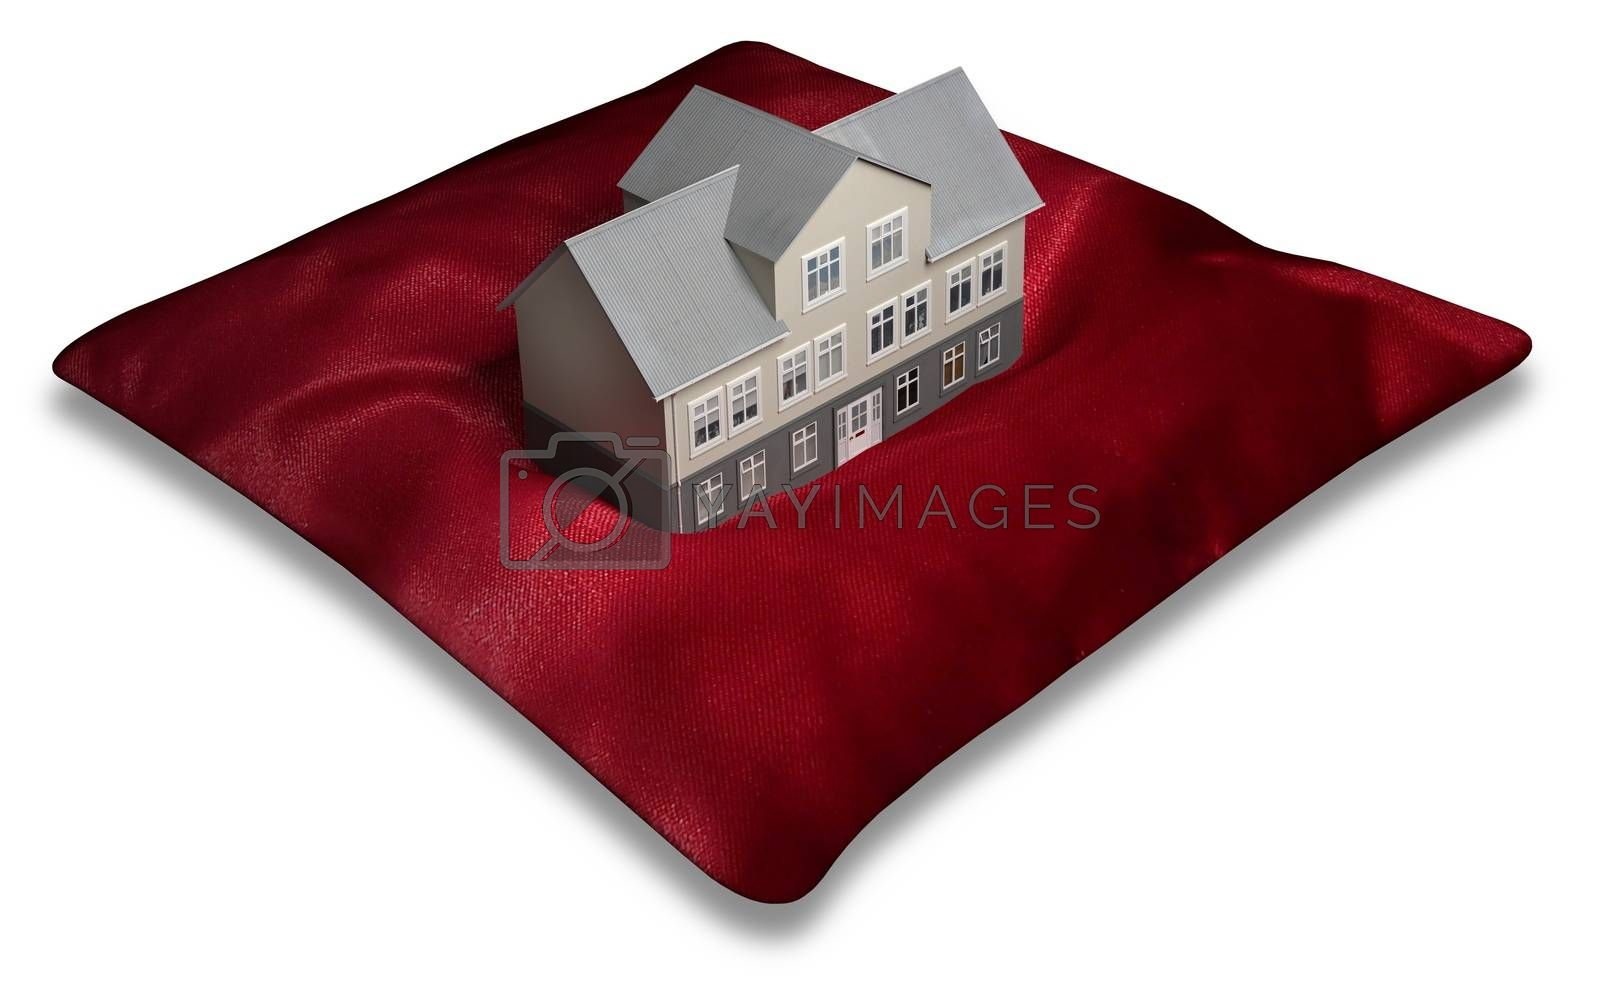 Illustration of a building on top of a red pillow